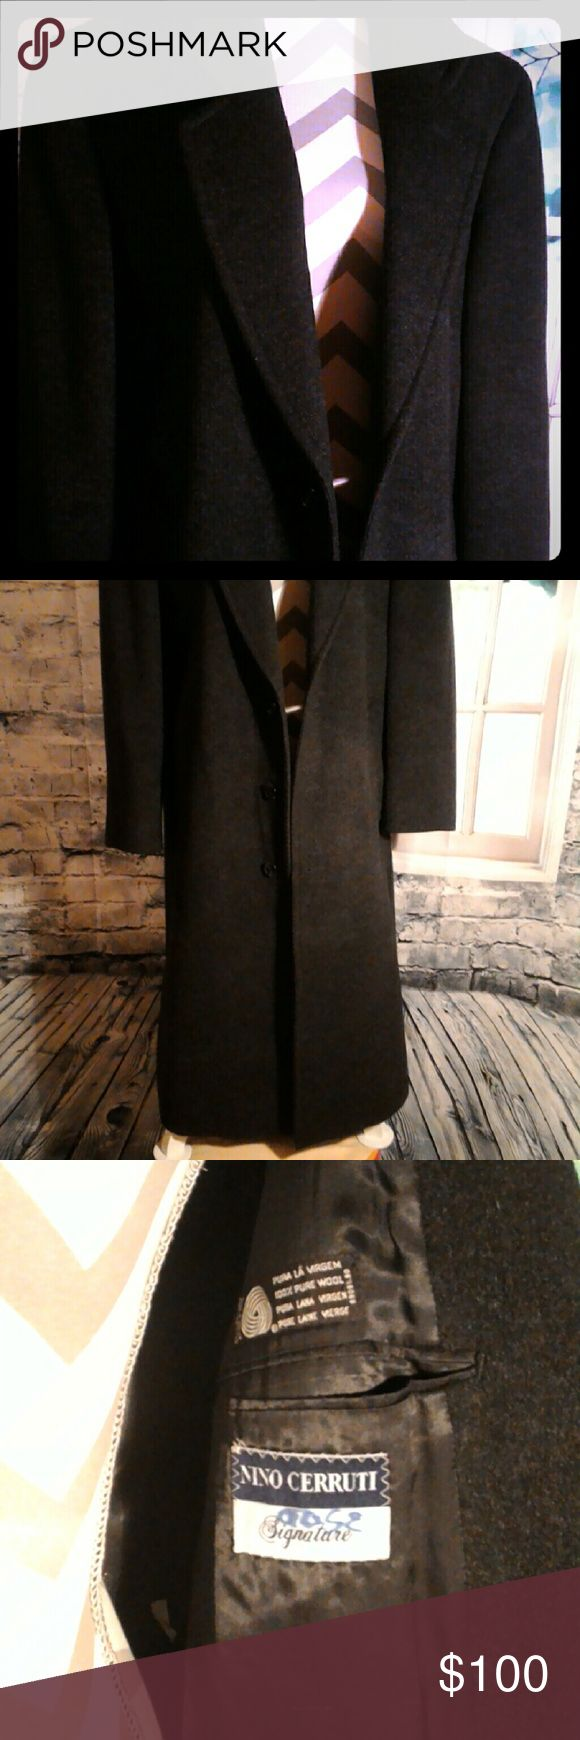 Nino Cerruti Signature Black Wool Coat 40R A Black Nino Cerruti Signature Wool 100% Coat. This fabulous jacket is in excellent condition authentic!! Looks and feels great for the Winter!! Has Notch Lapels, Double Breasted, Slit Pockets and made in Brazil!! If any questions please ask!! Nino Cerruti Signature Jackets & Coats Trench Coats